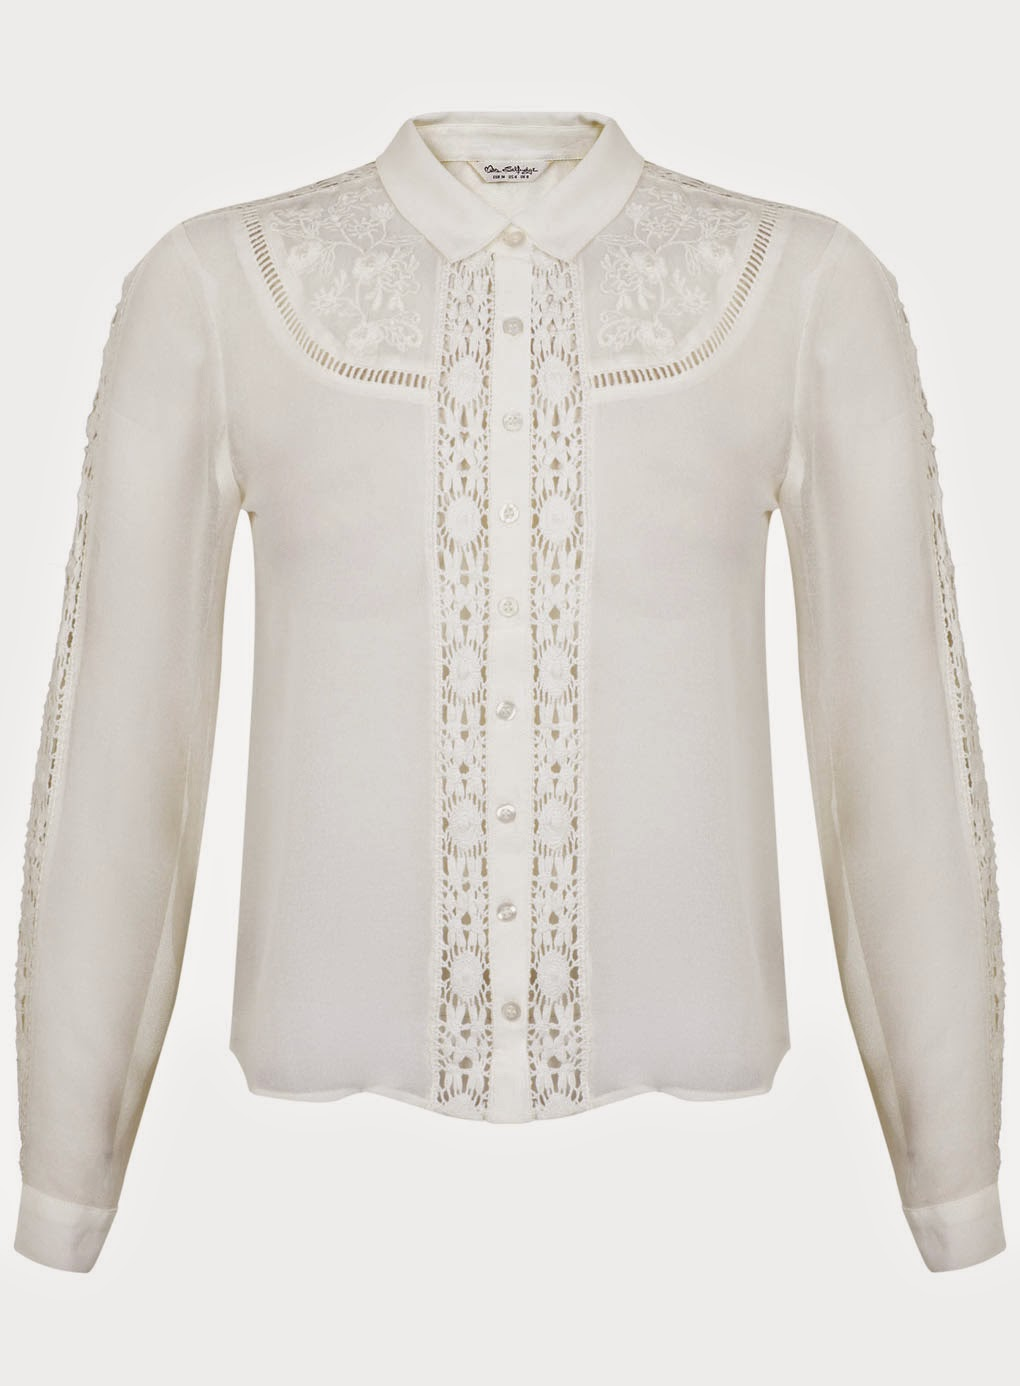 miss selfridge cream embroidered shirt, cream embroidered shirt